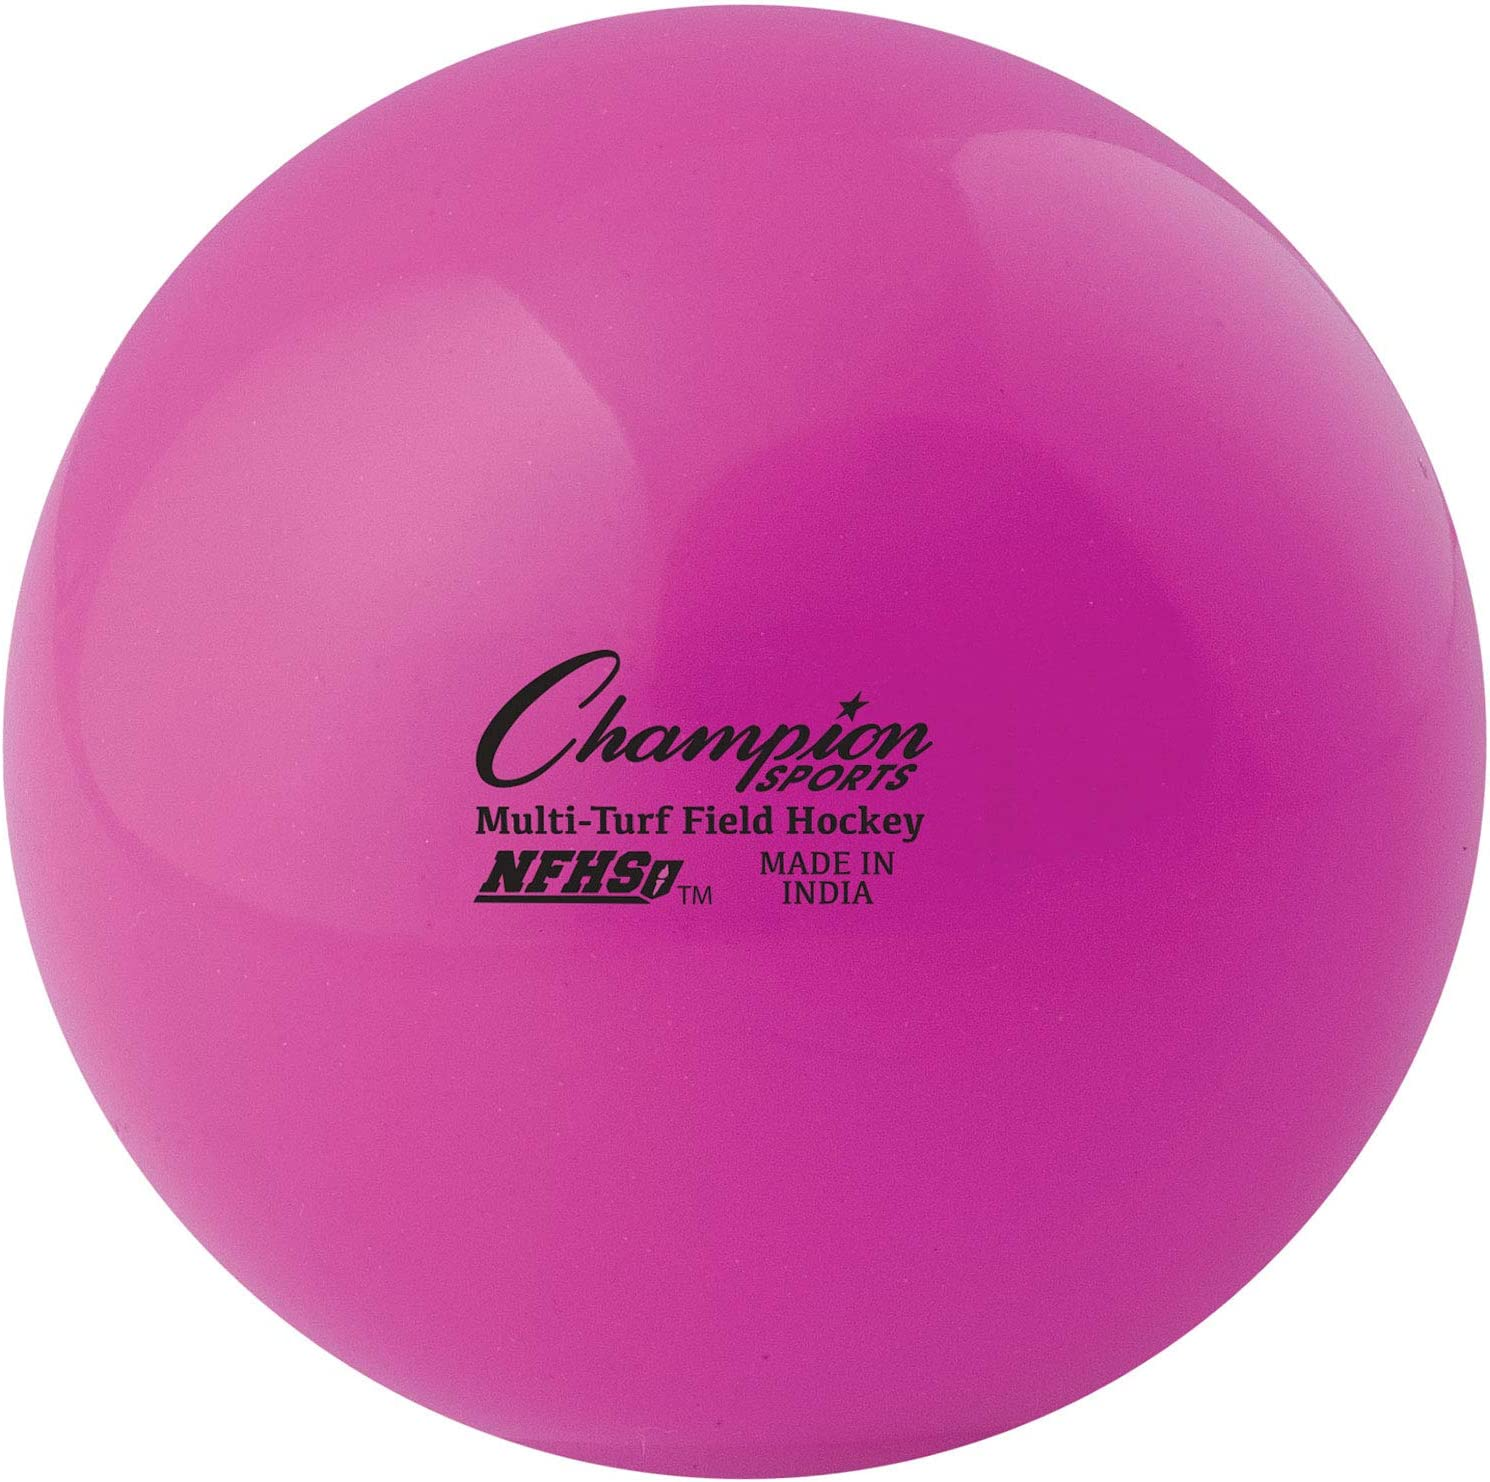 """Champion Sports Field Hockey Balls, Regulation Size, 12-Pack, 2.75"""" Each - NFHS-Approved Sports Hockey Ball Set for Fields, Grass, Turf - Durable, Bouncy, Lightweight, Bright Colored - Pink : Sports & Outdoors"""